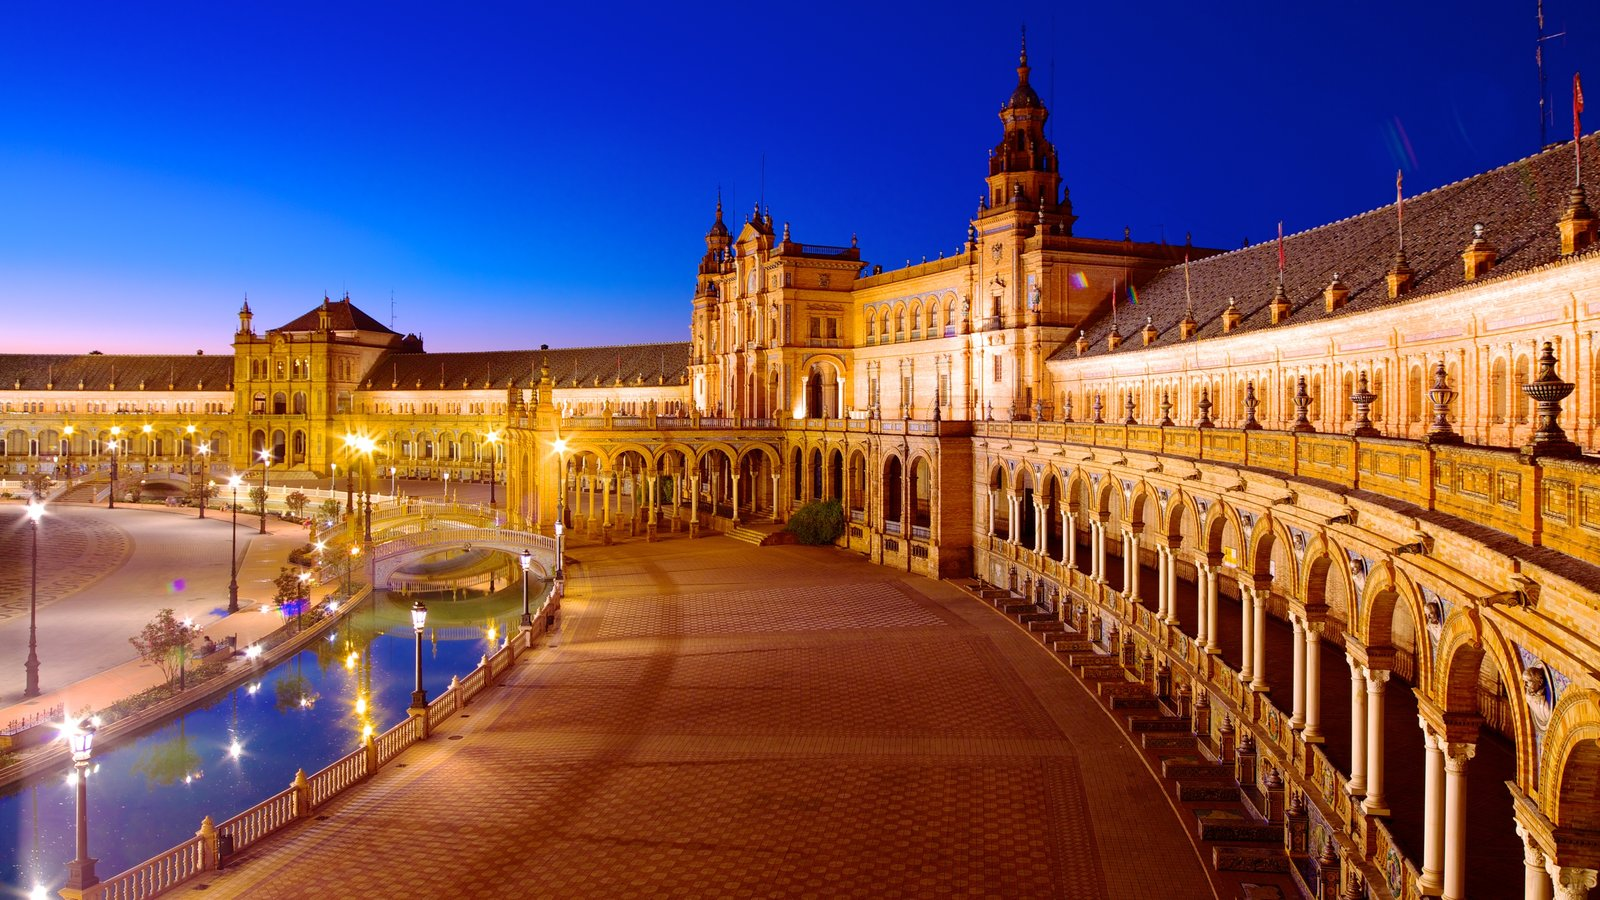 Plaza de Espana which includes night scenes, a square or plaza and château or palace